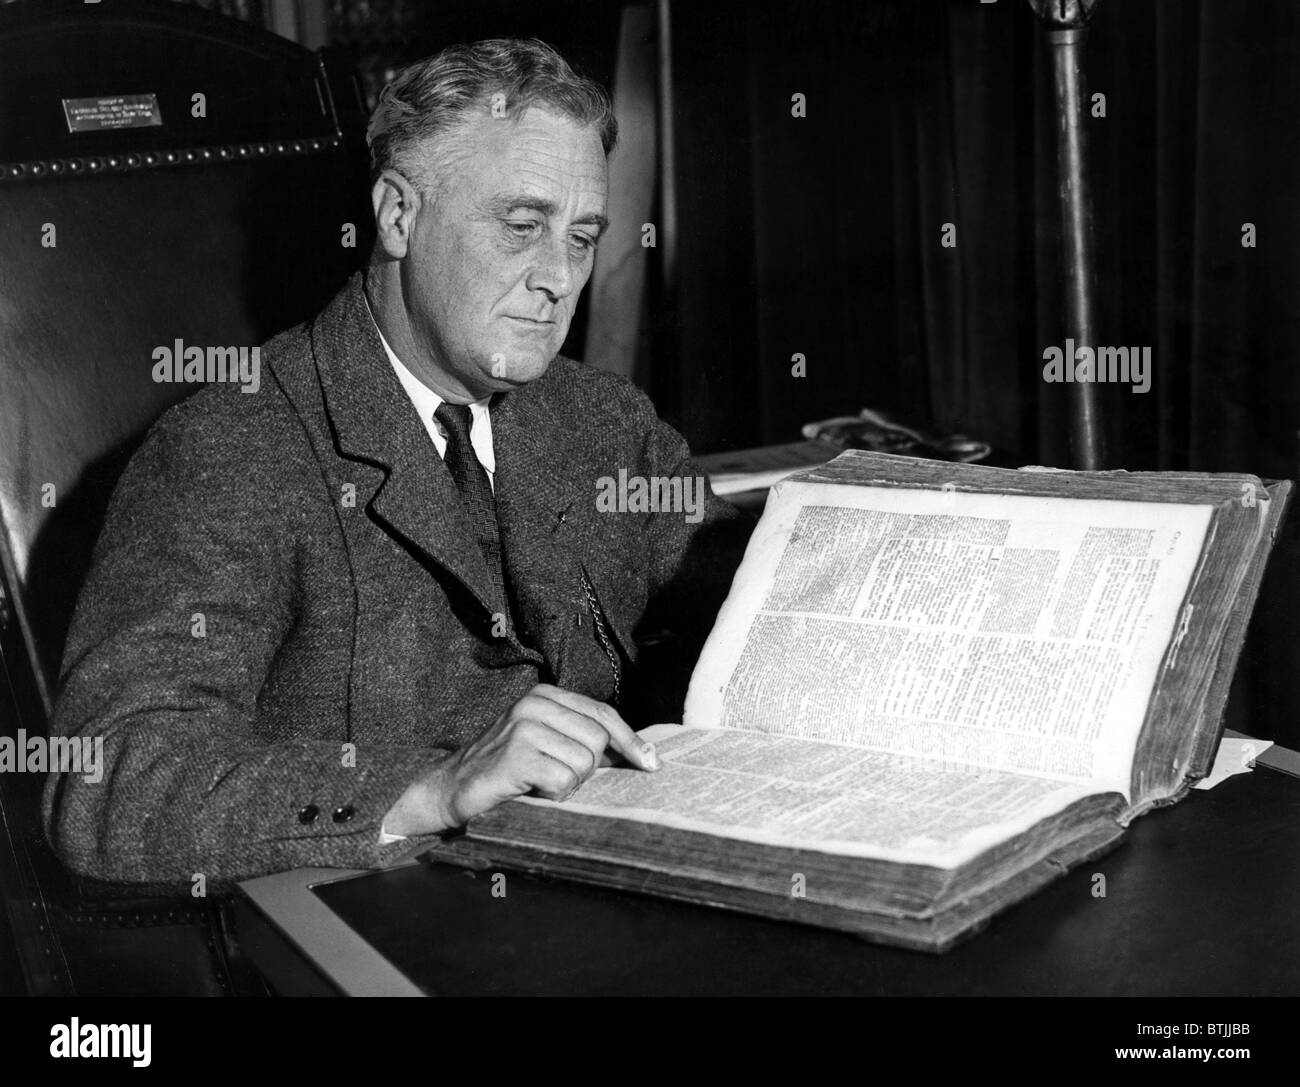 Image result for Franklin Delano Roosevelt inaugural bible